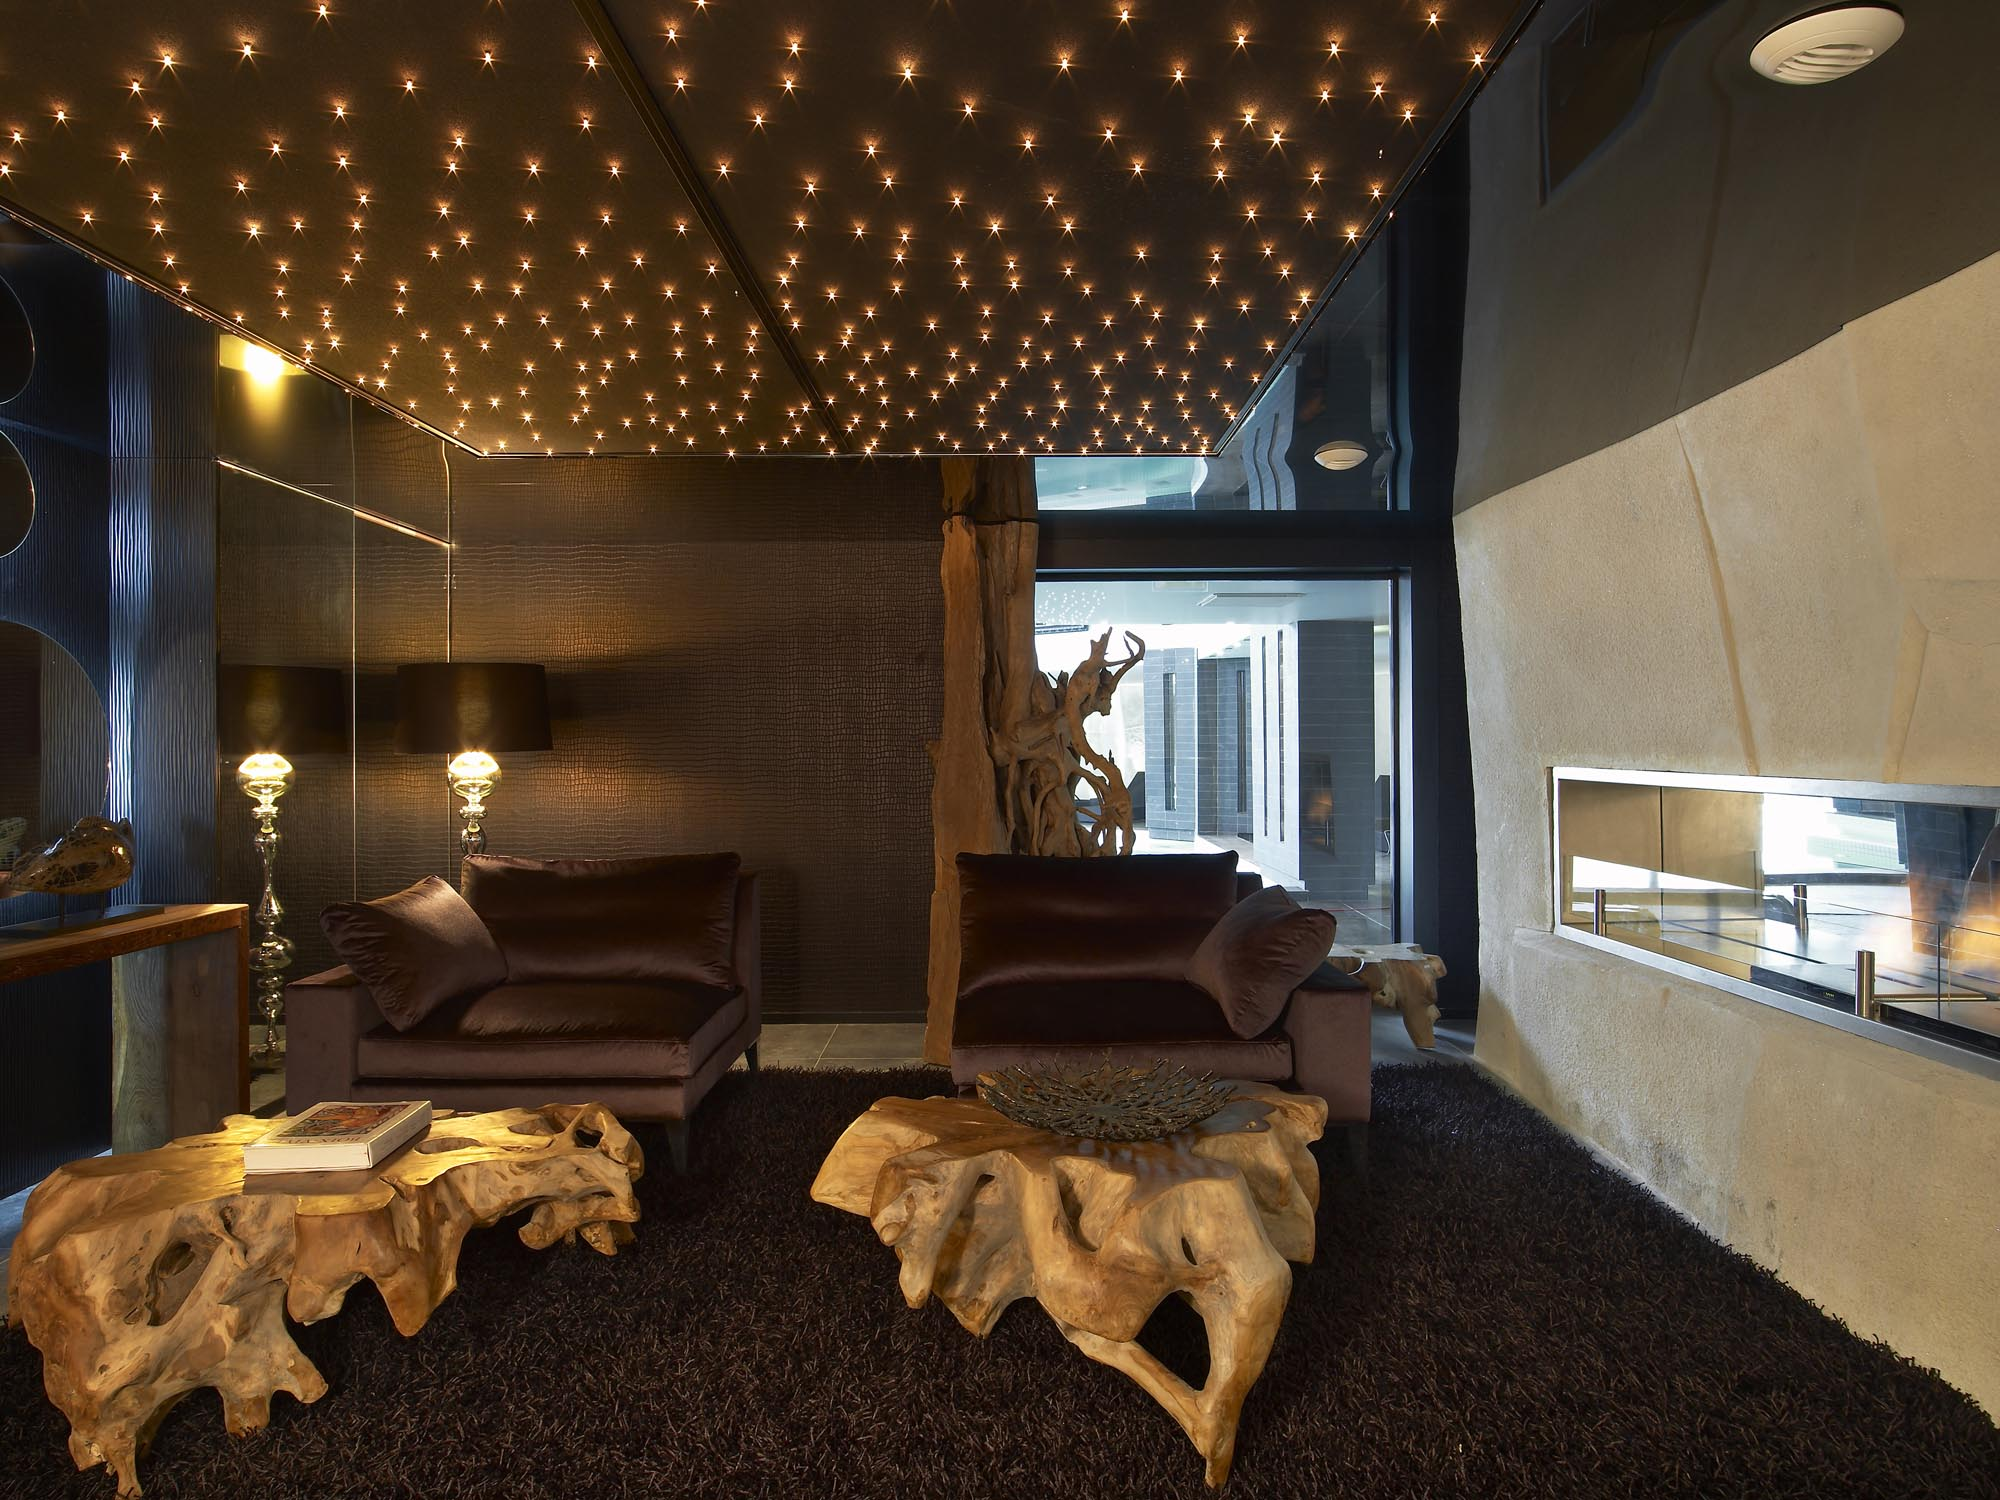 Starlit Plafonnier , warm white LEDs, 252x244cm, Spa hôtel Strato*****, Courchevel